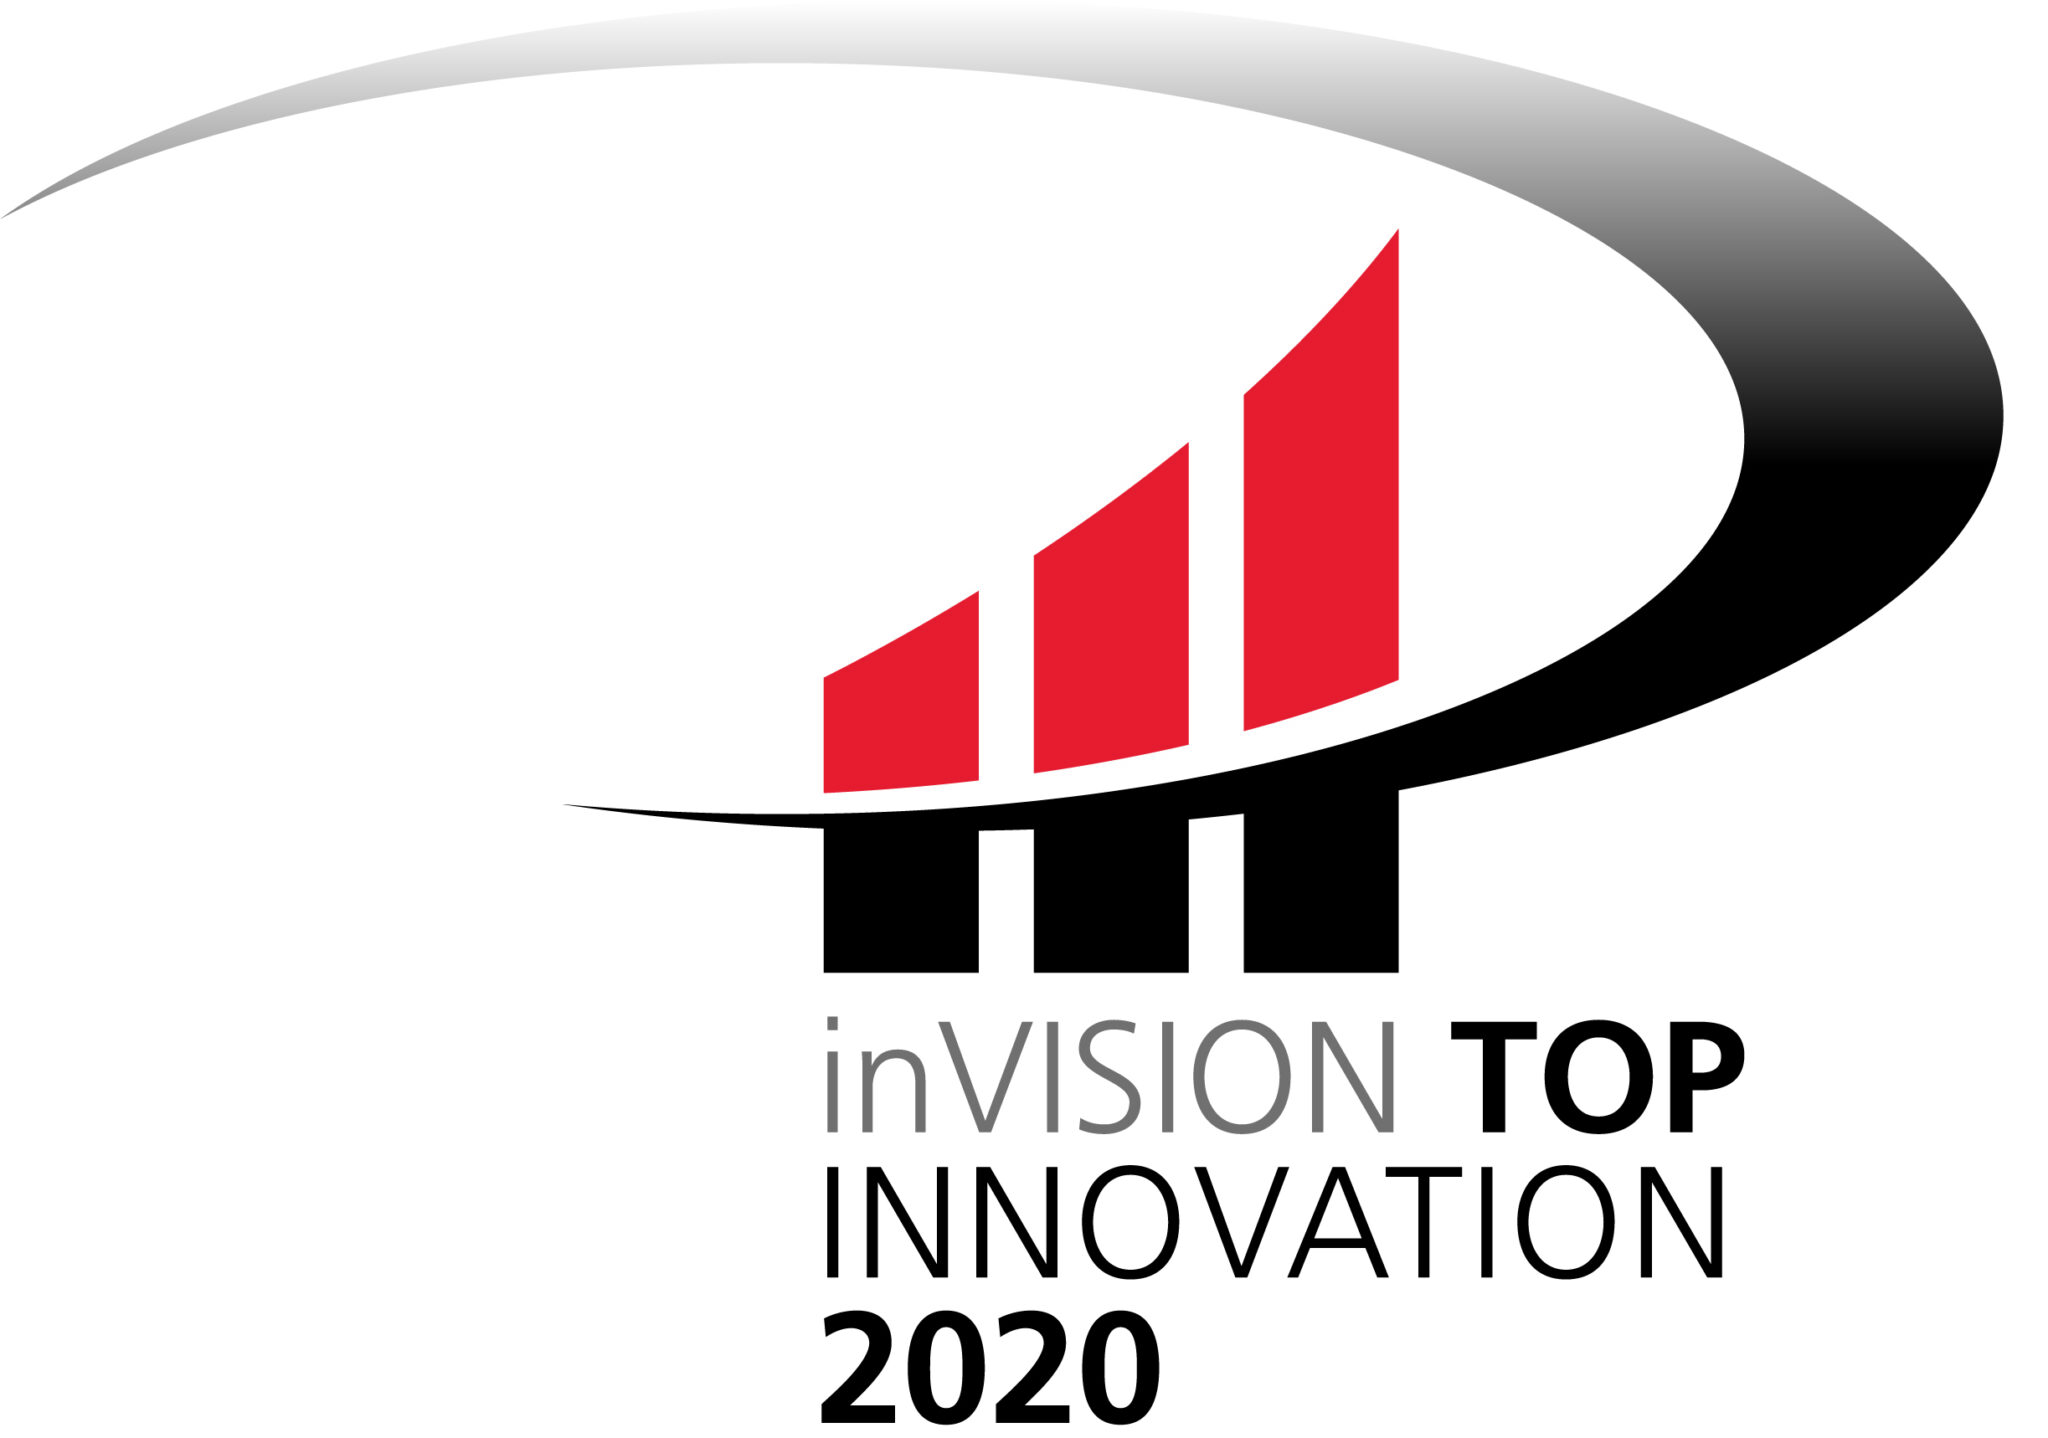 LumiScanX is inVISION Top Innovation 2020